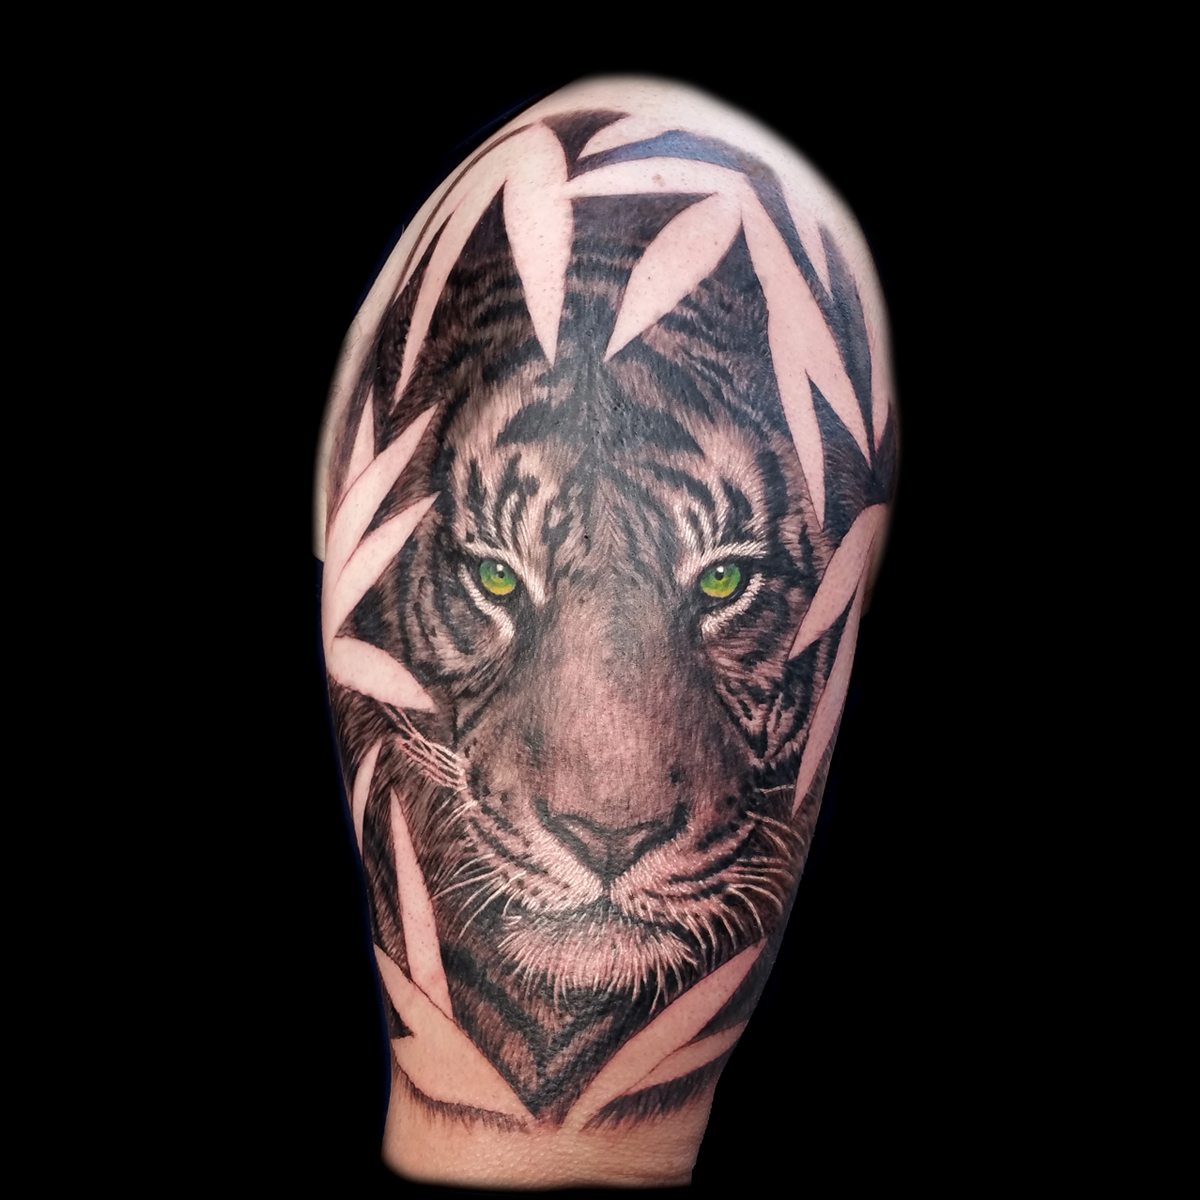 Realistic Tiger Tattoo Done At Masterpiece Tattoo In San Francisco Explore creative & latest tiger tattoo ideas from tiger tattoo images gallery on tattoostime.com. realistic tiger tattoo done at